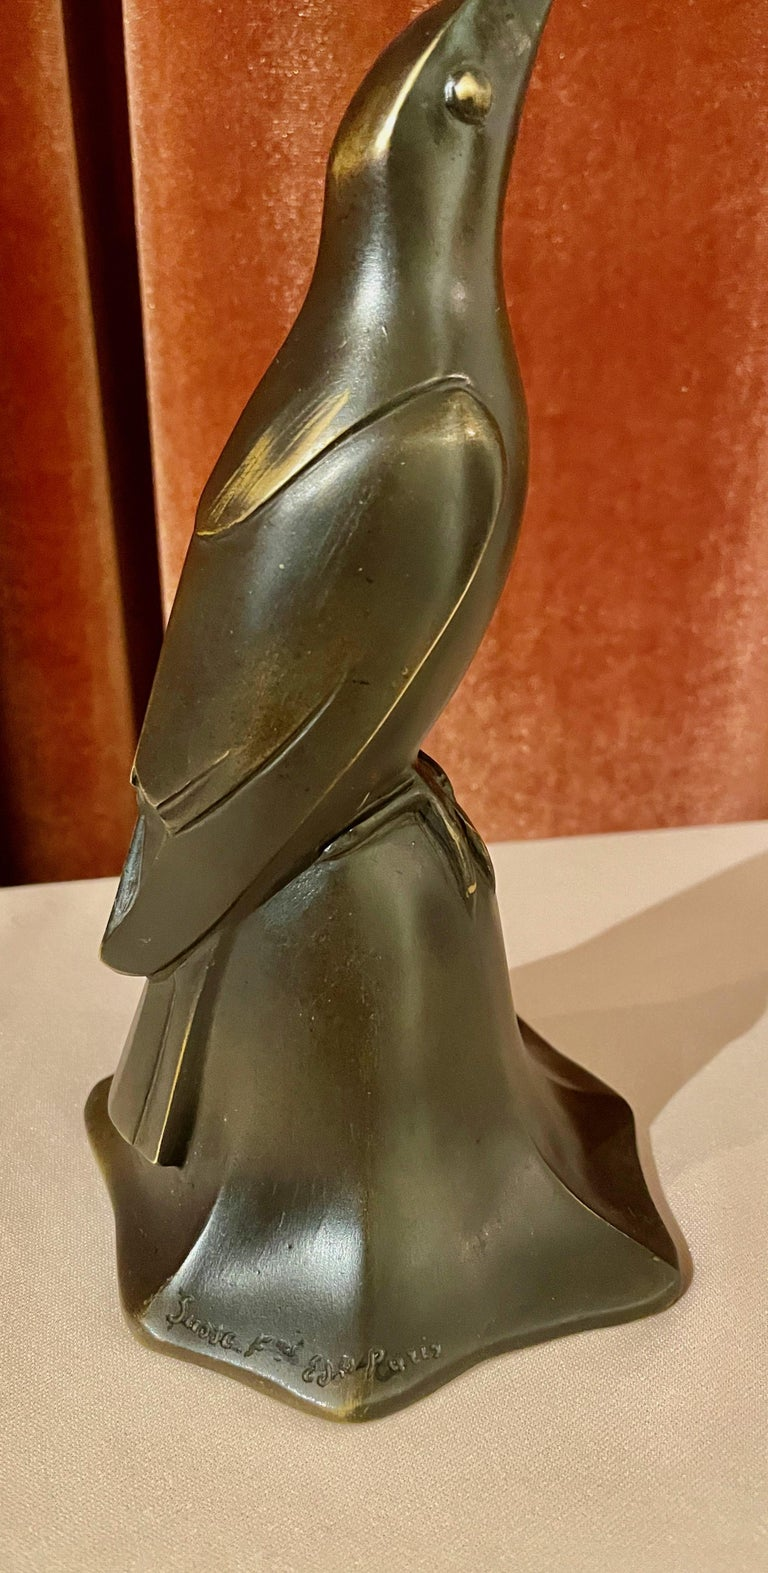 Art Deco Bronze Blue Bird Bell Sculpture by Edouard Marcel Sandoz Cubist, French For Sale 7